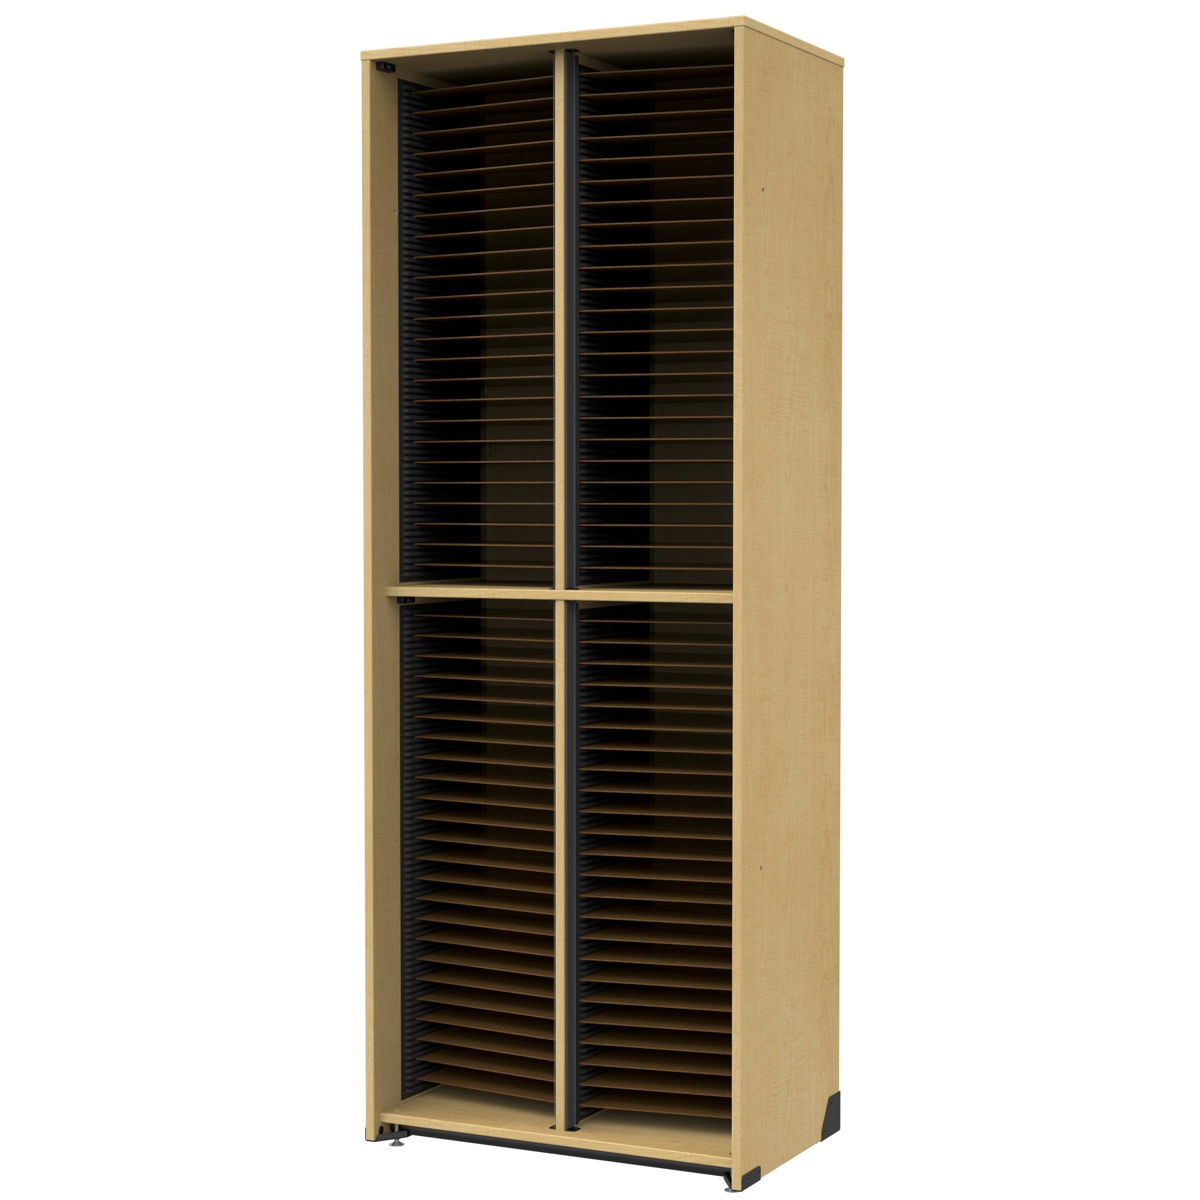 Bs400 Folio Cabinet Marco Group Inc